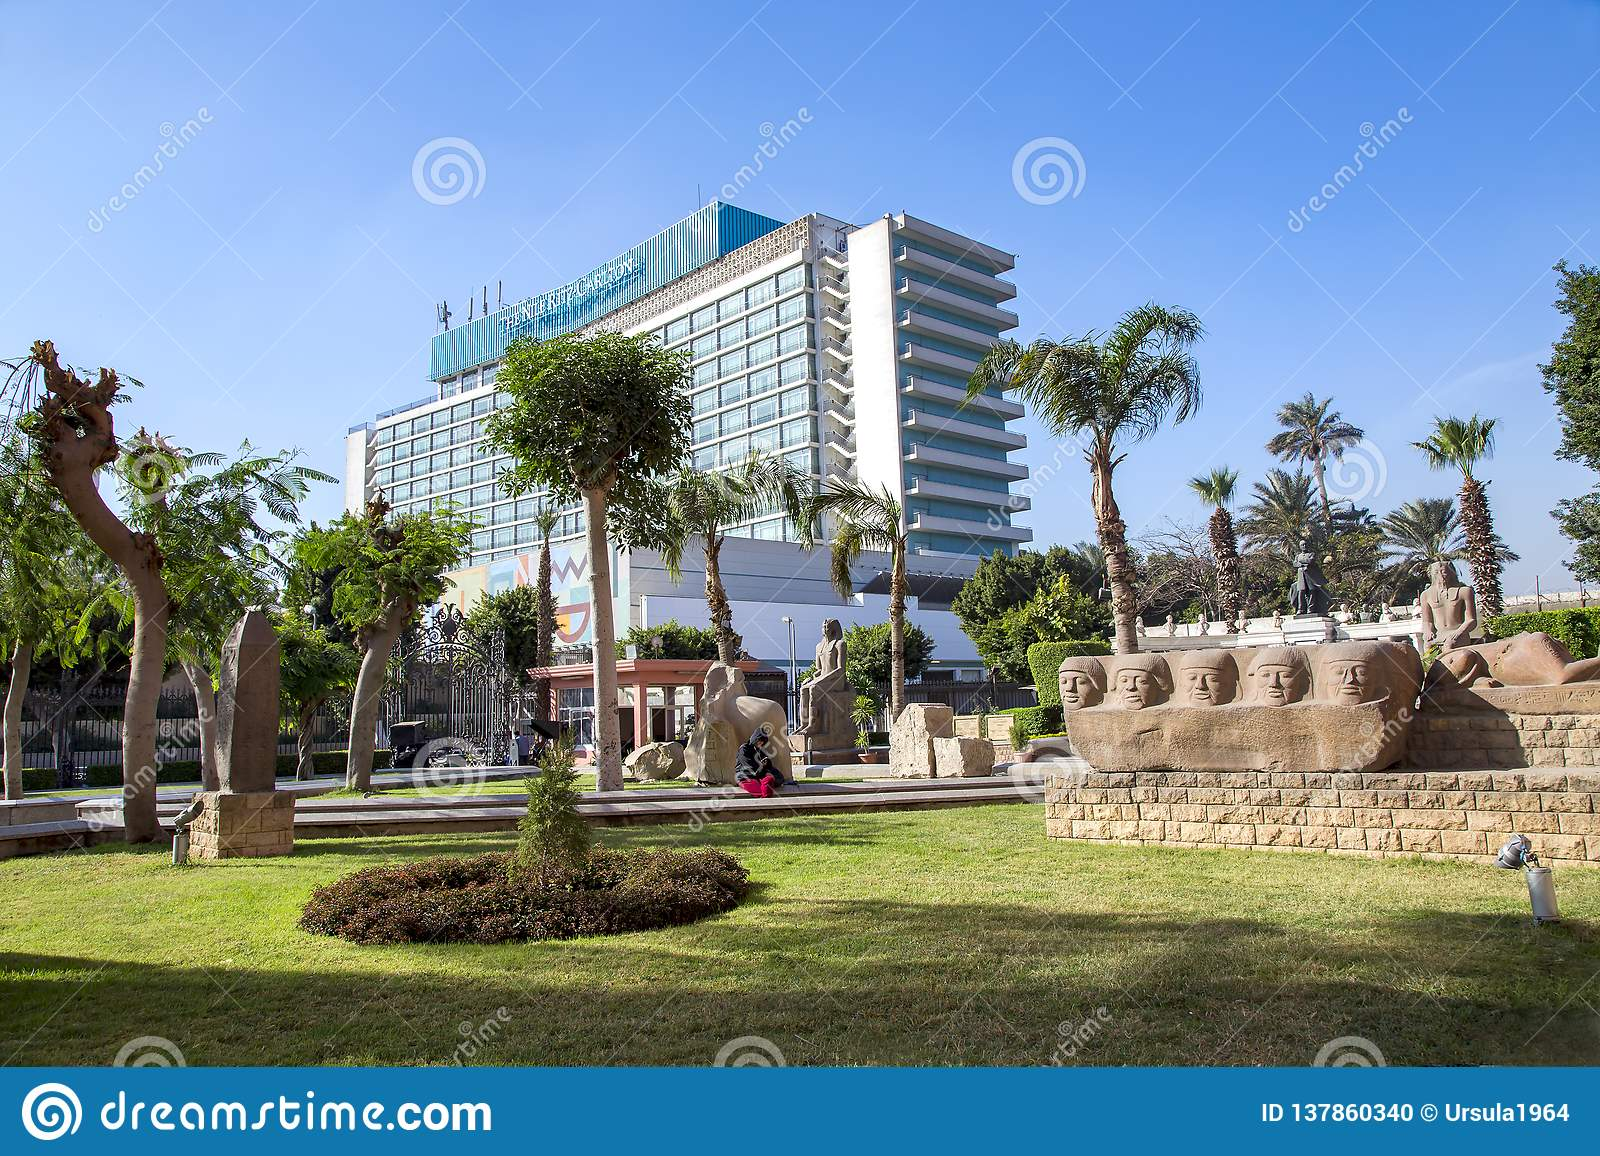 Building Of Modern Hotel The Nile Ritz Carlton Editorial